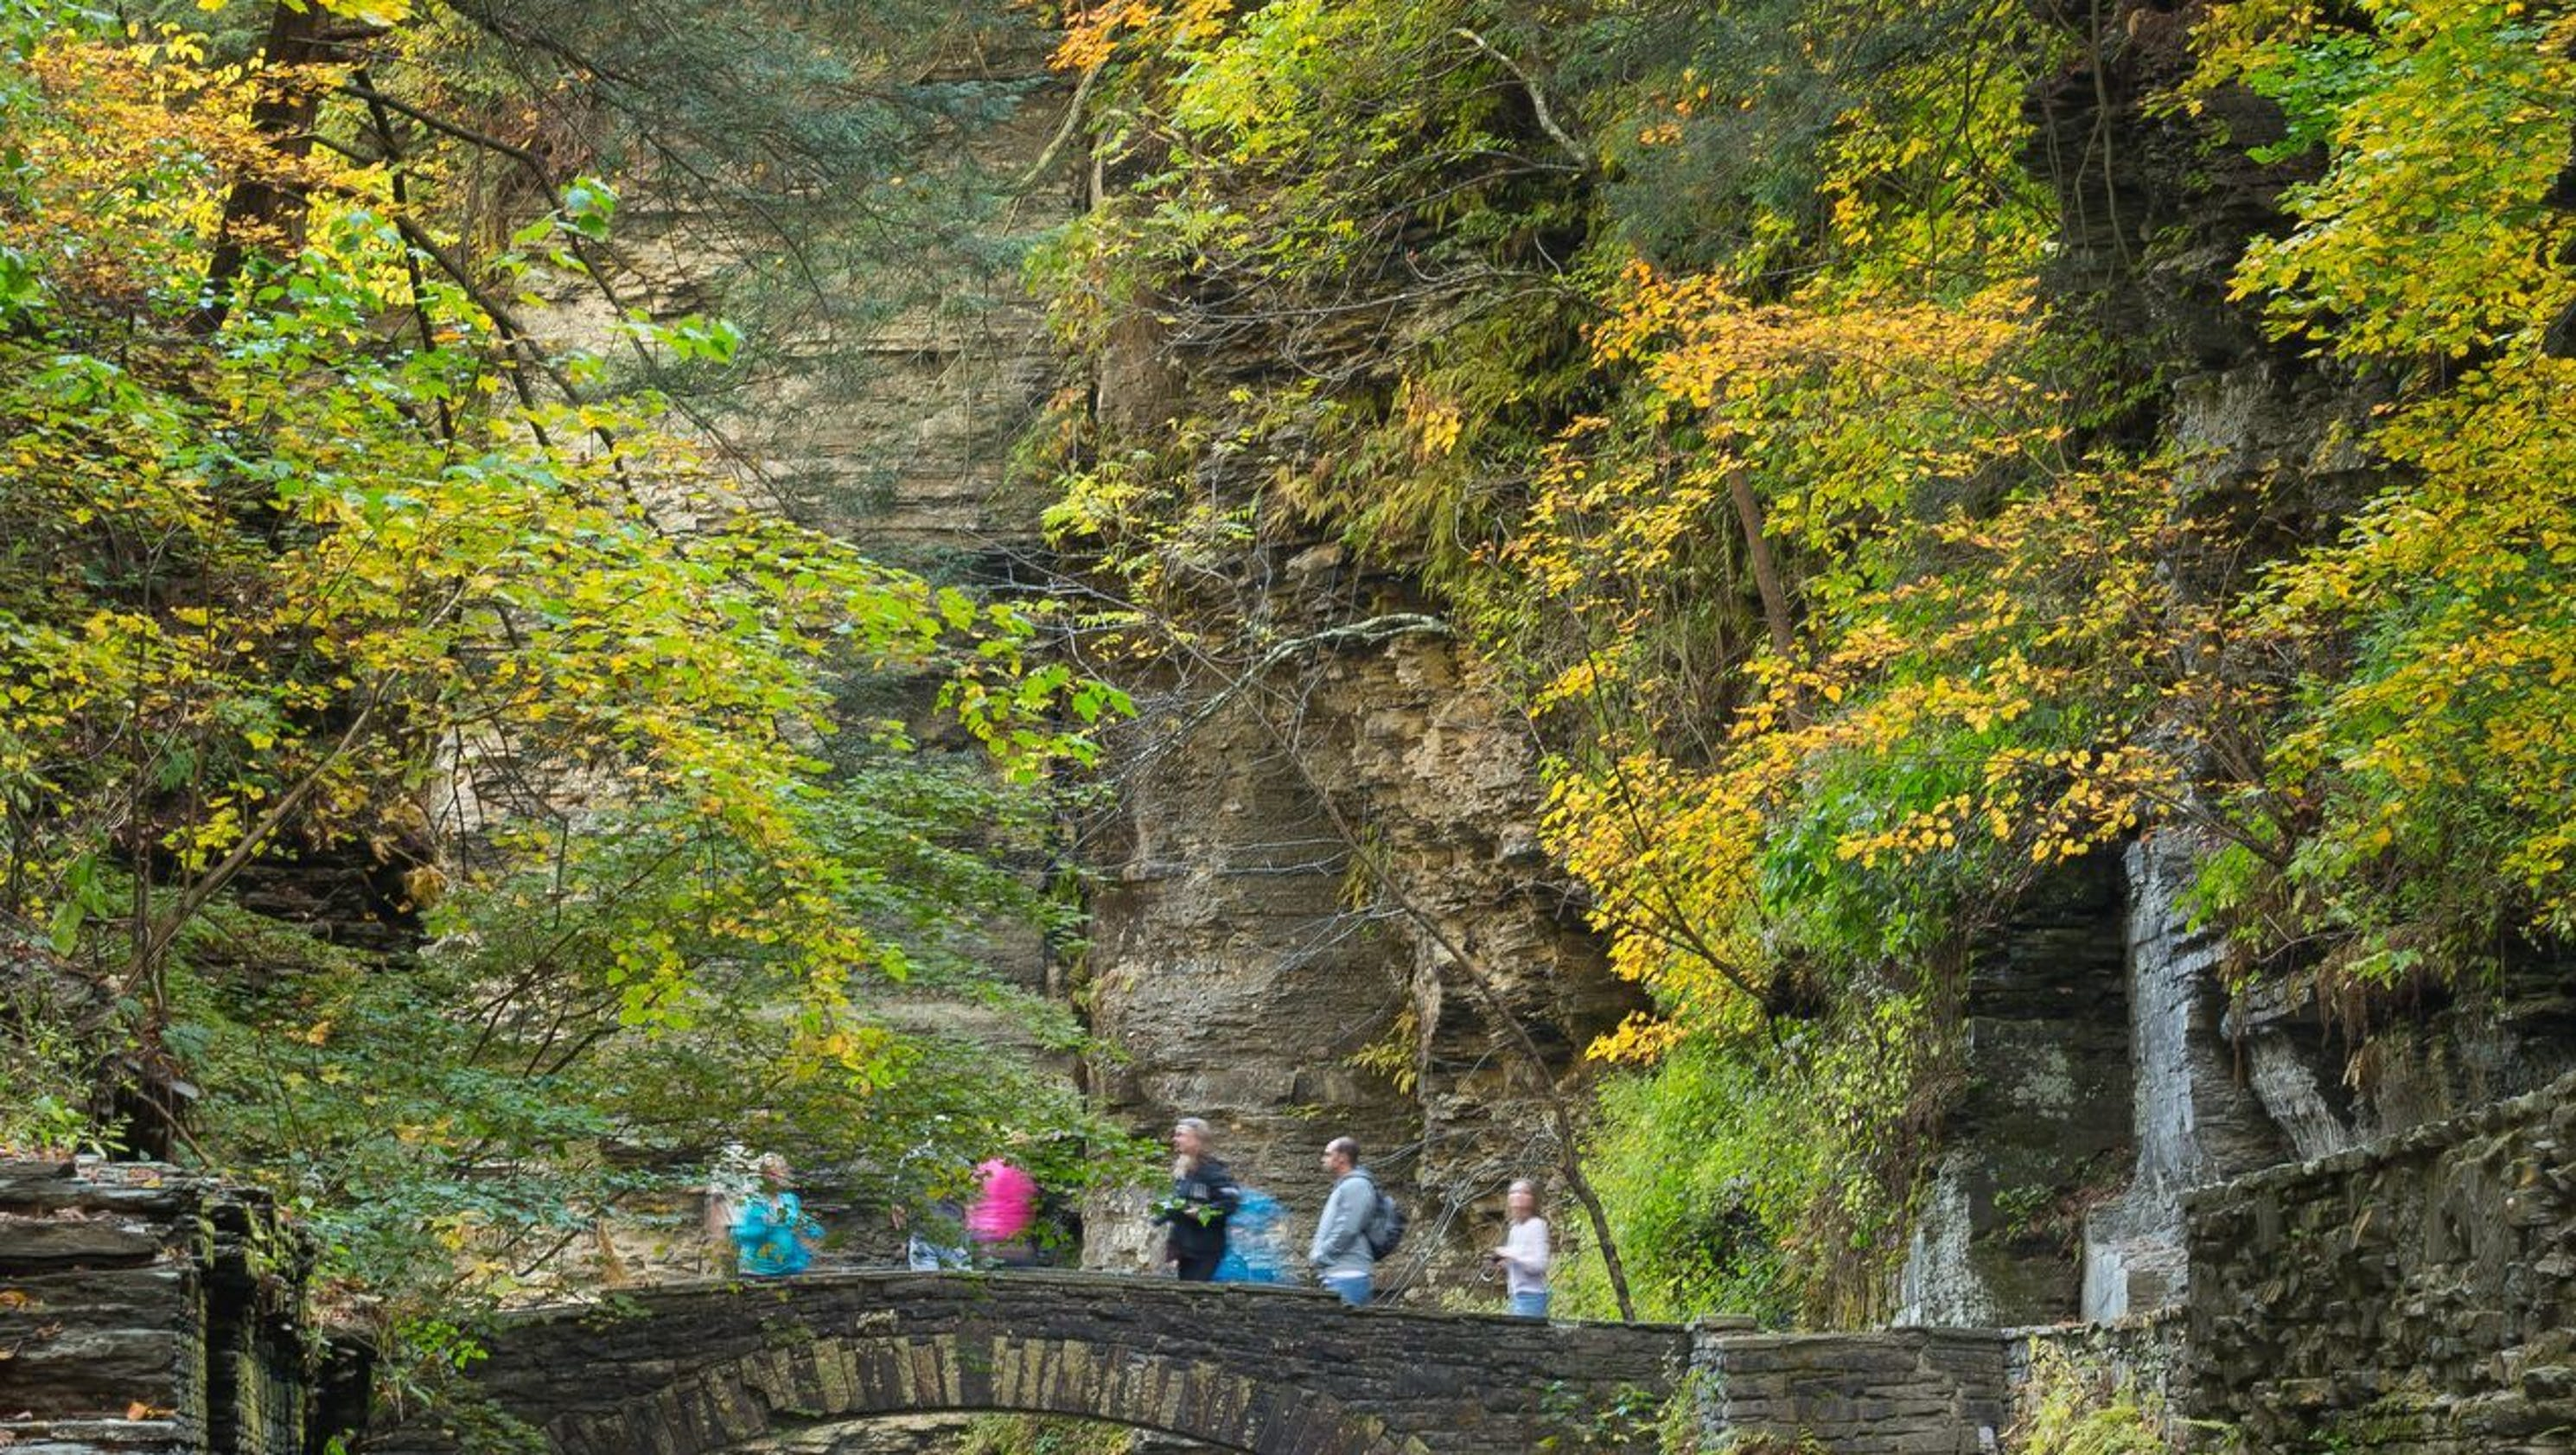 Leaf peeping: Great places for fall foliage in upstate New York